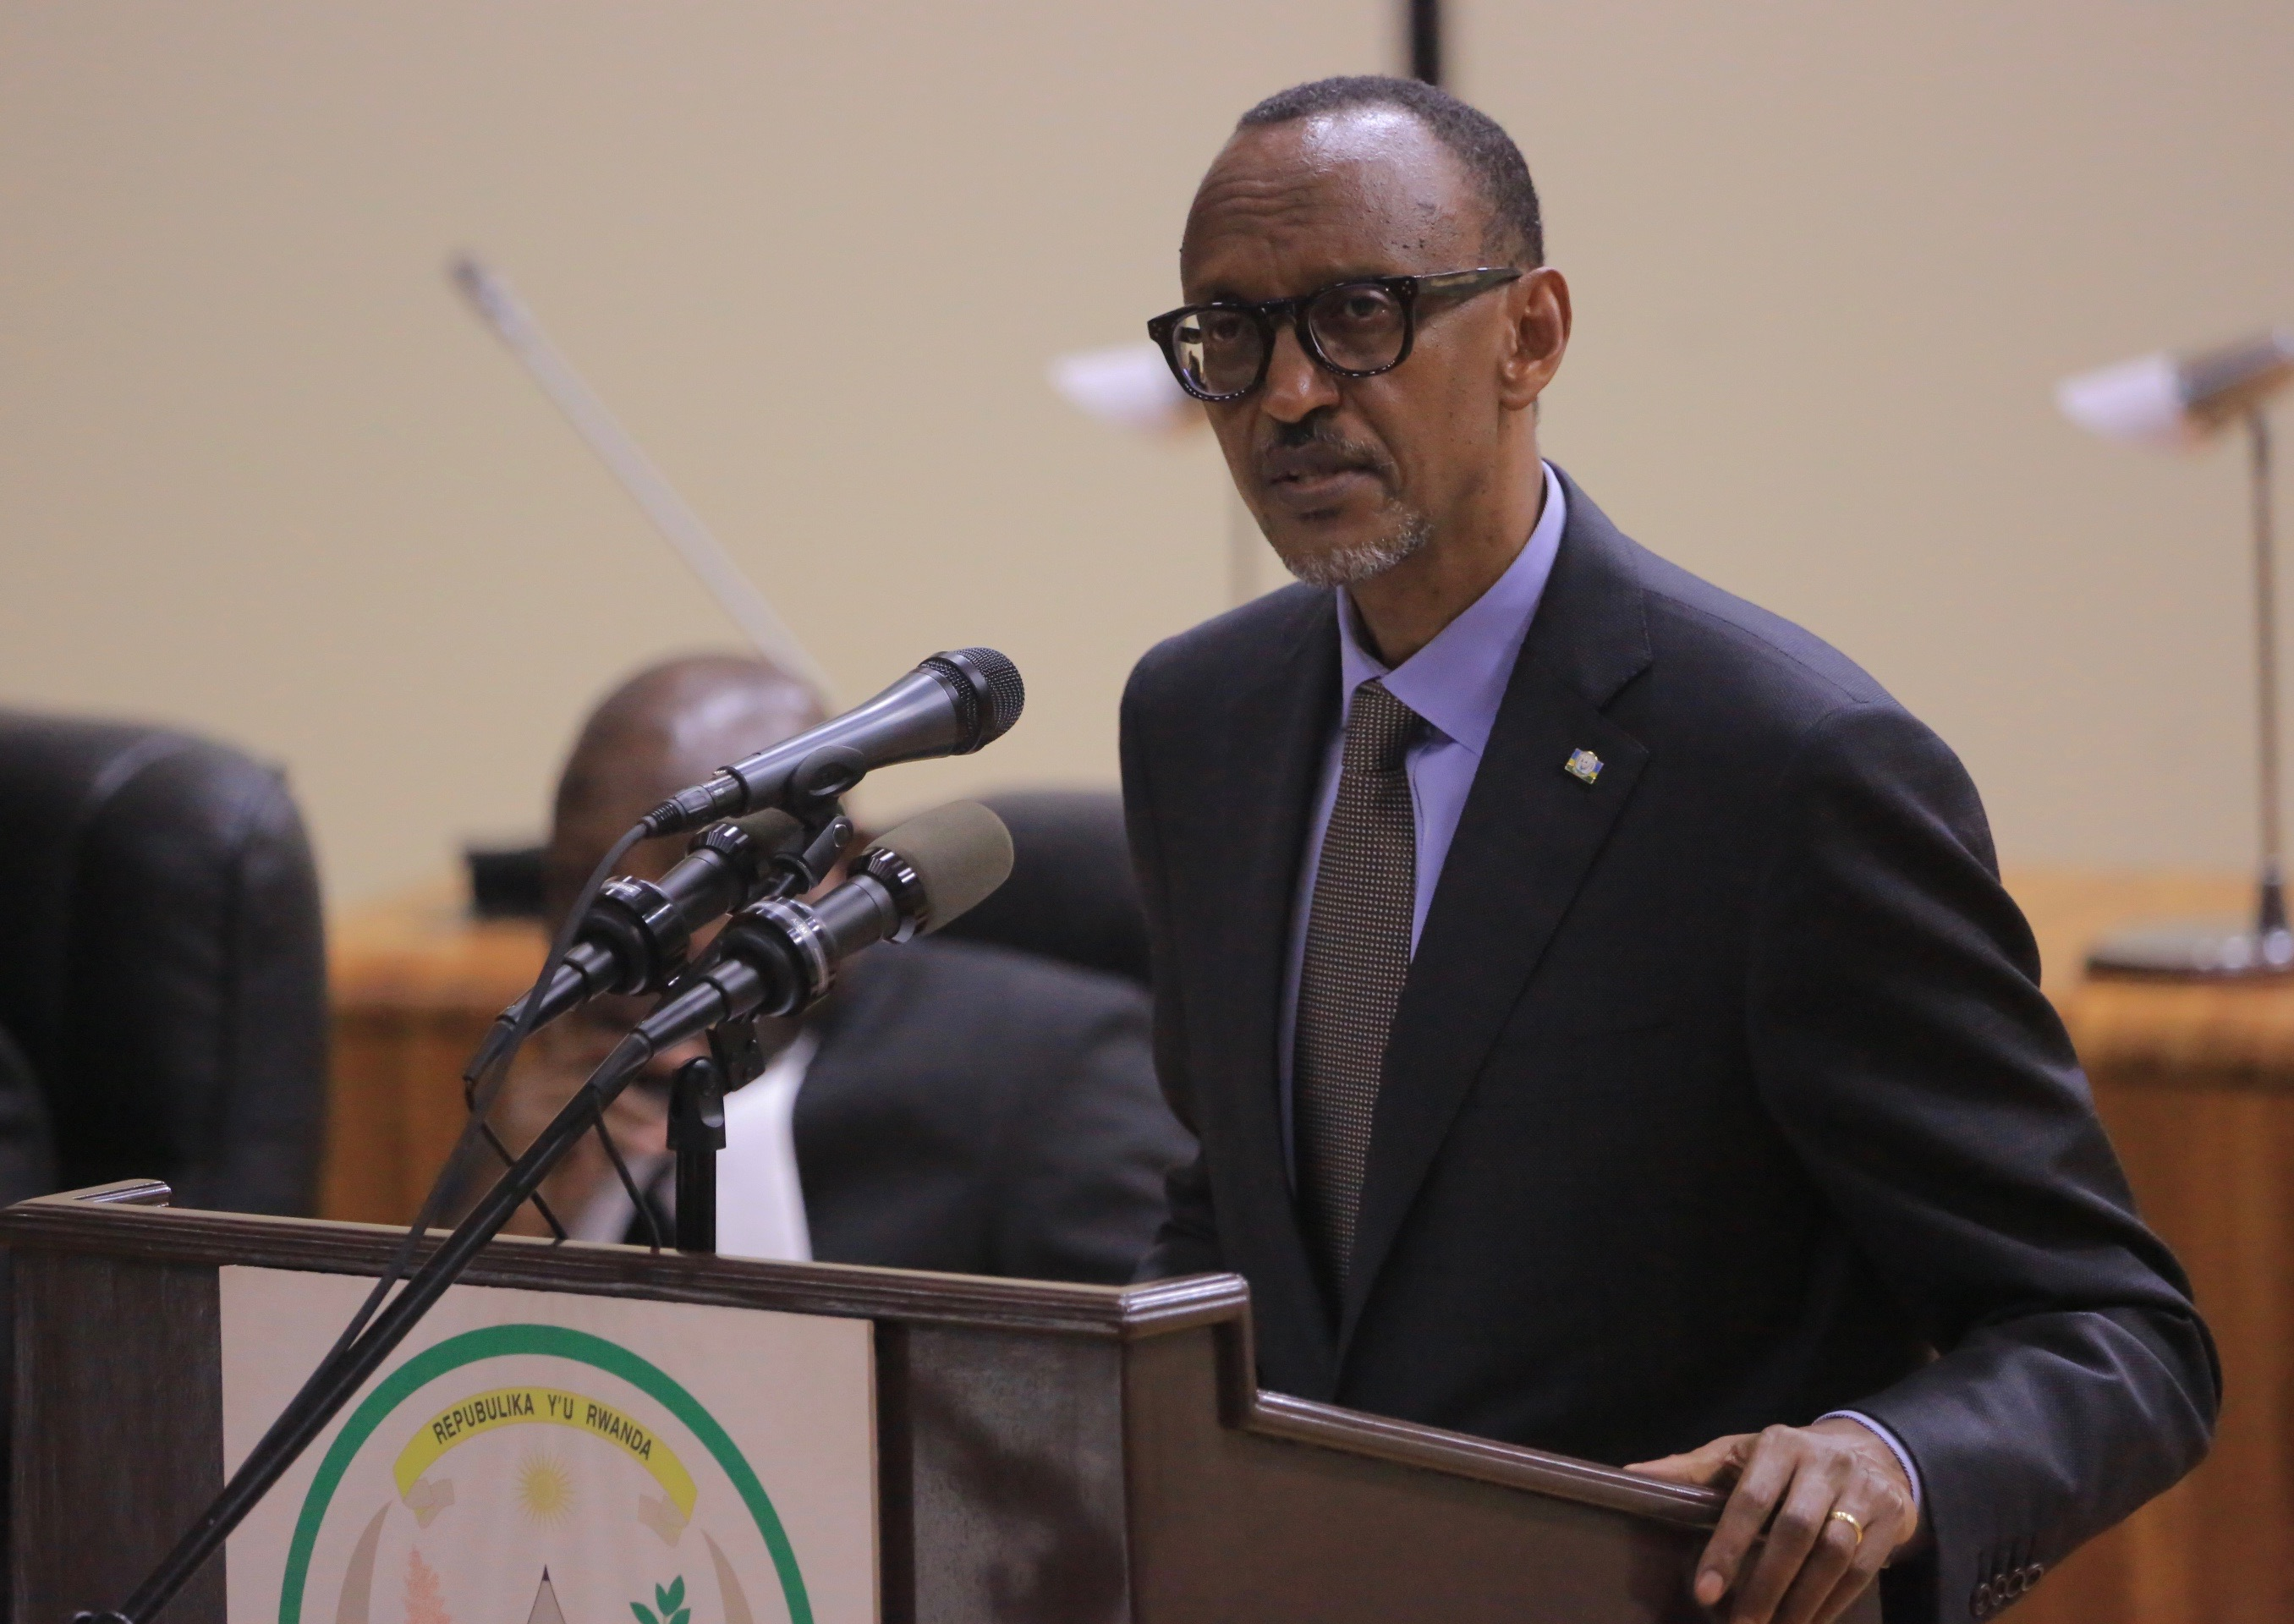 H.E. Paul Kagame, President of Rwanda addresses EALA at the commencement of the 5th Meeting of the 5th Session in Kigali today